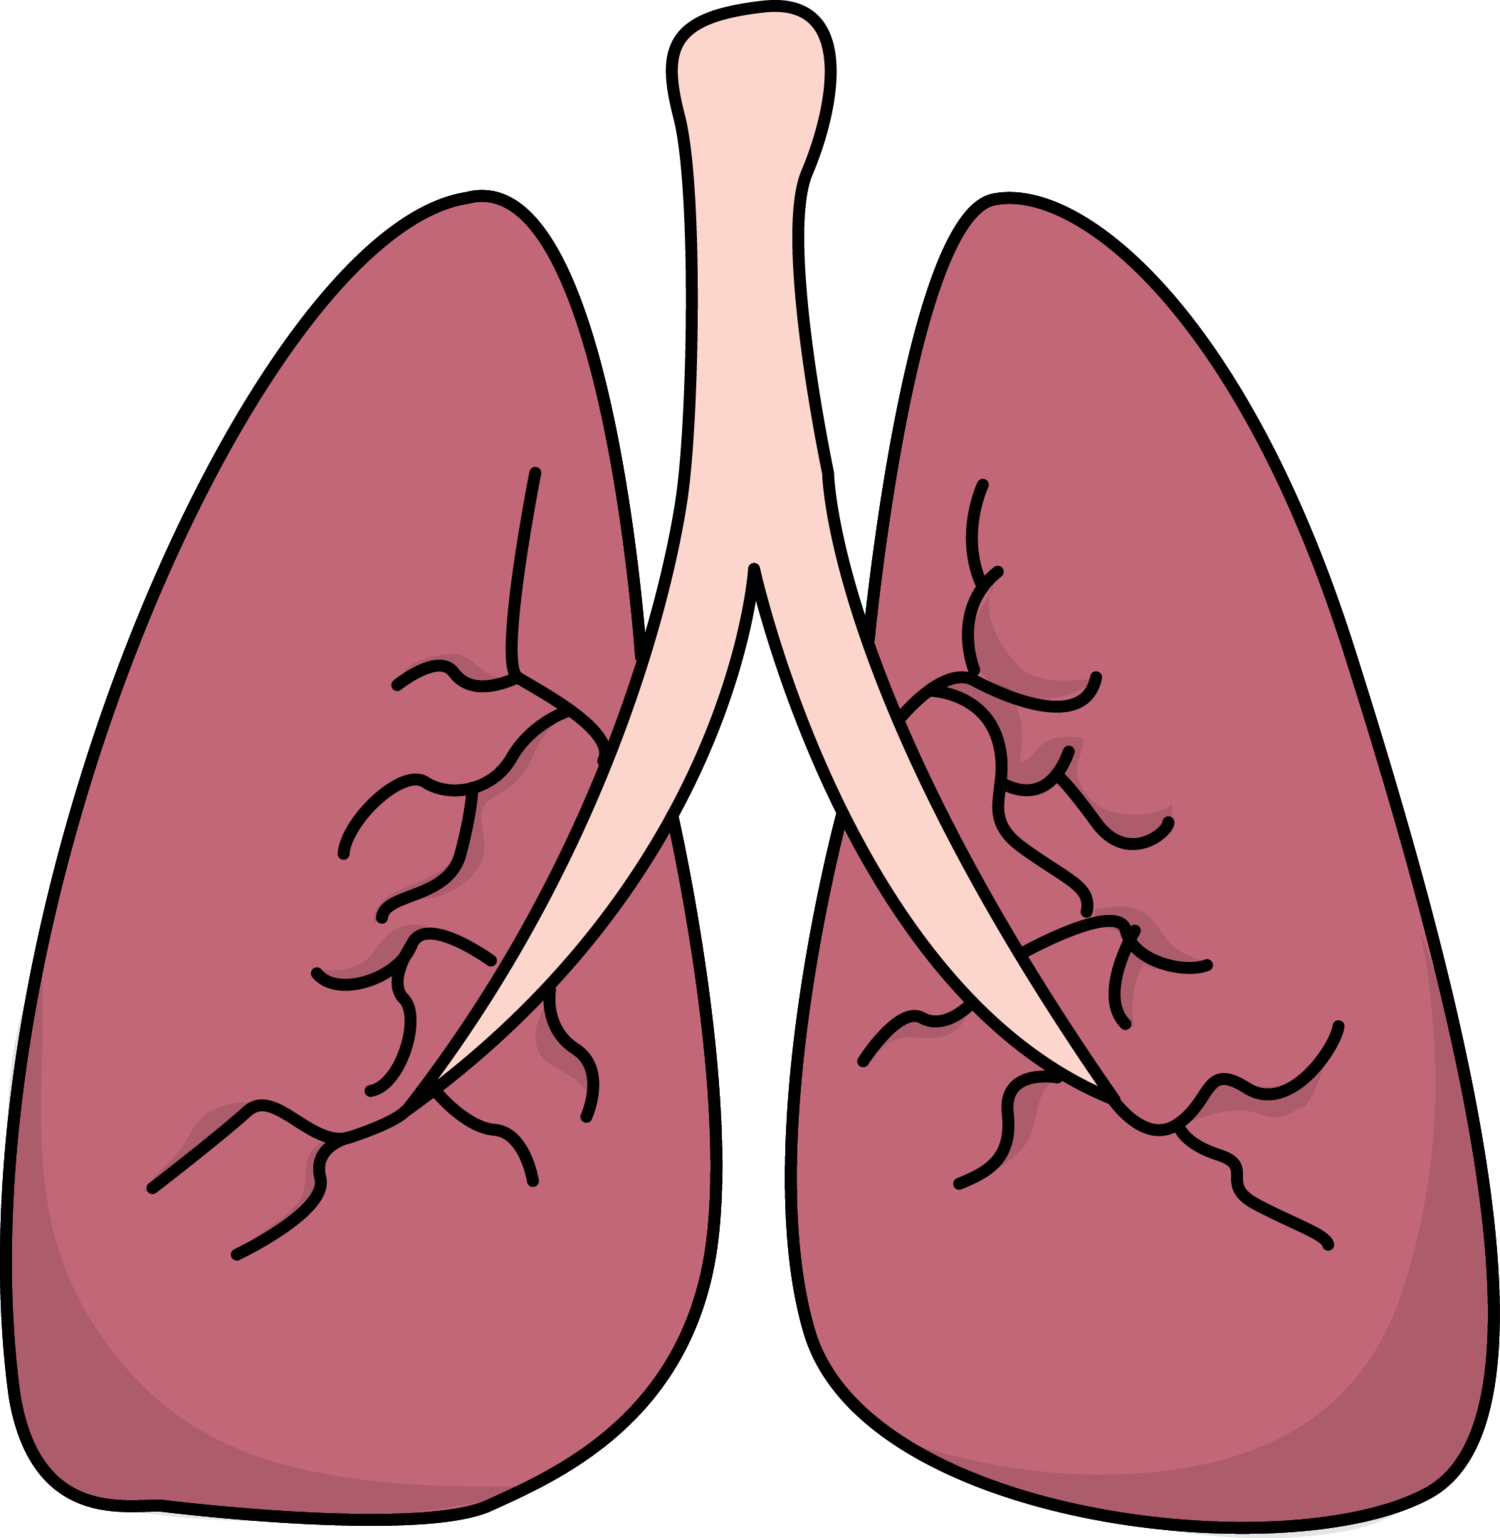 Lungs clipart asthma lung. In the clear hong